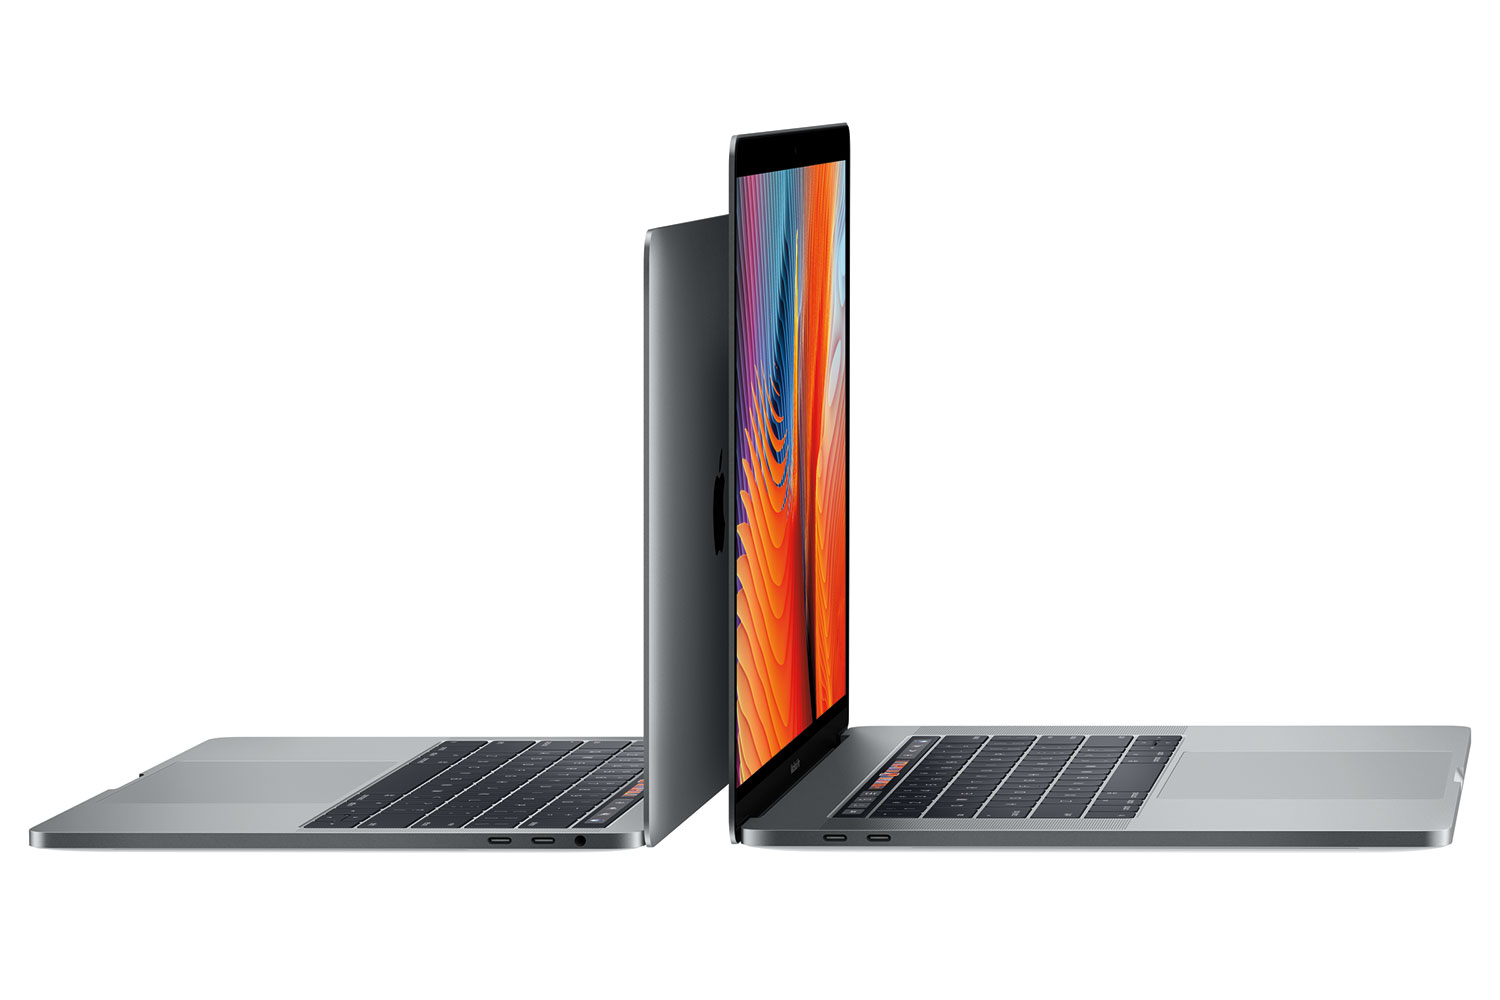 Should I buy a Macbook?